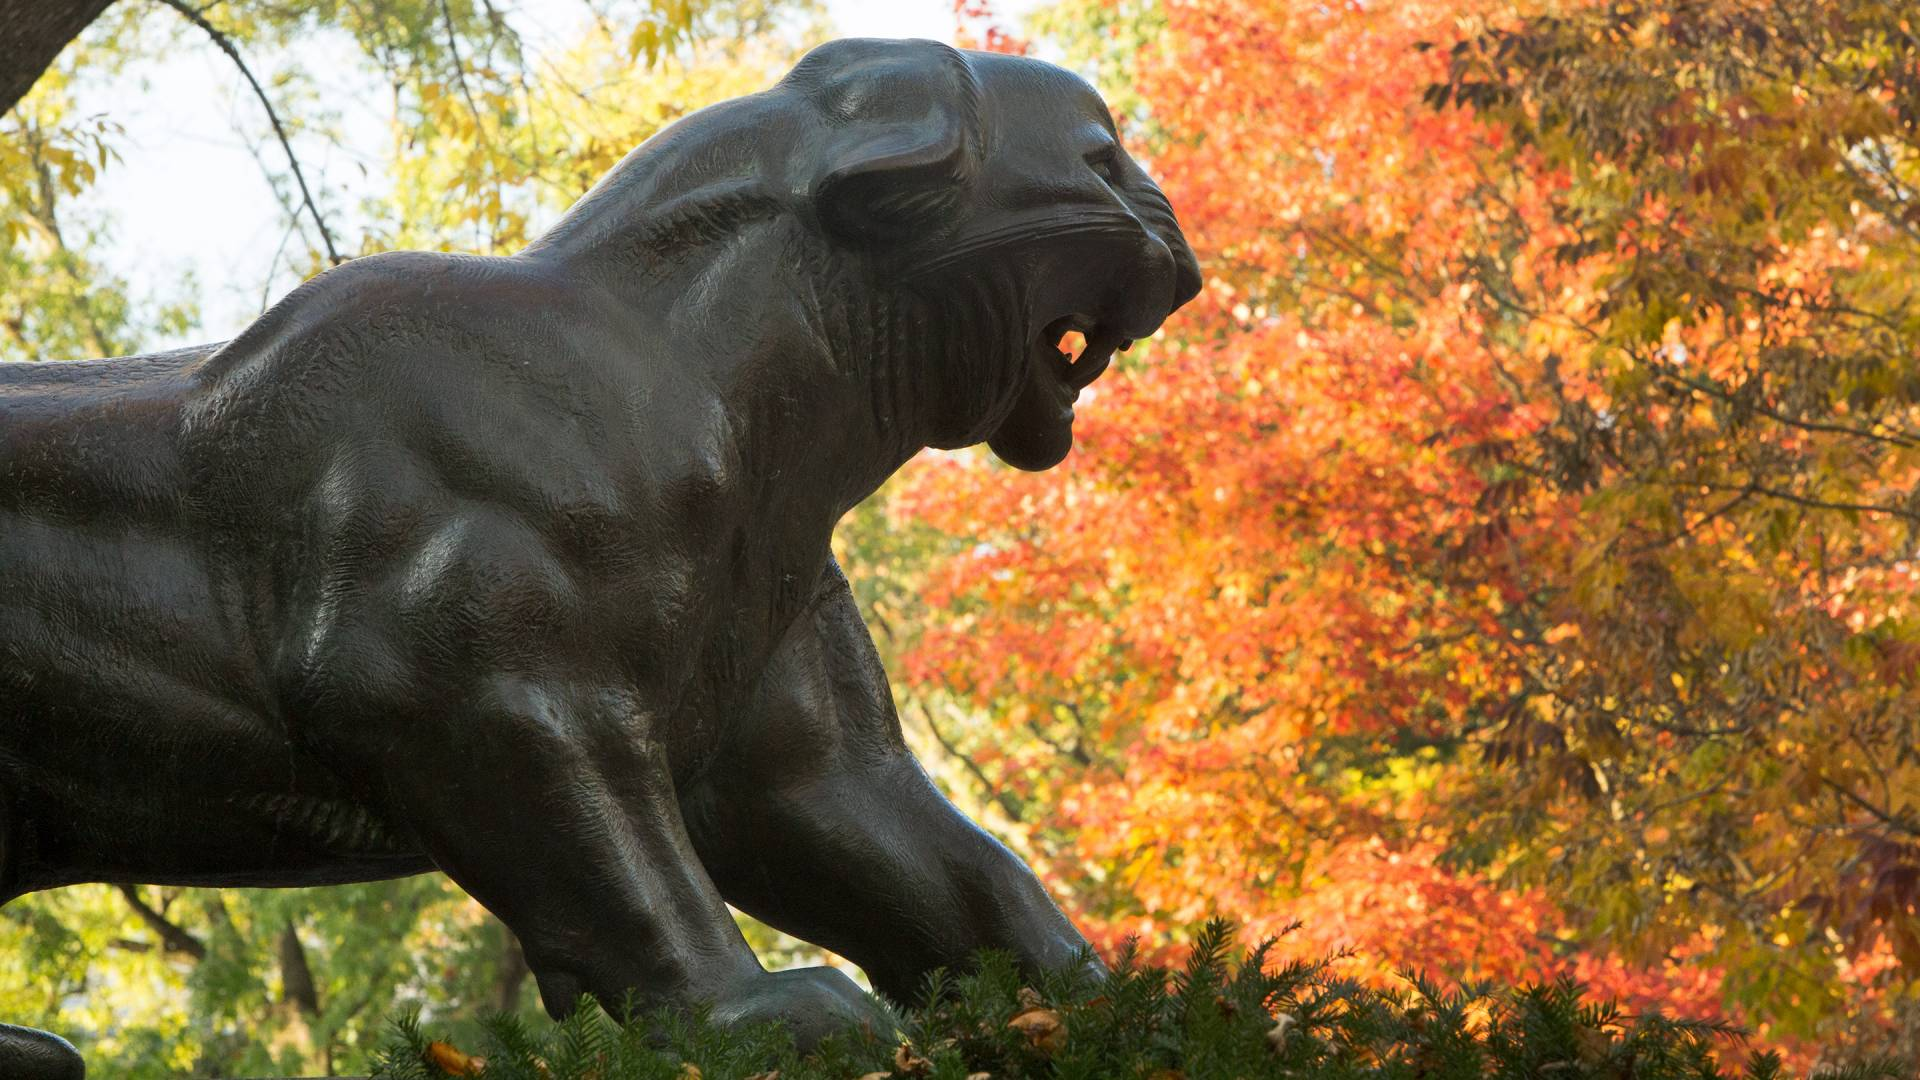 Bronze tiger statue with fall leaves